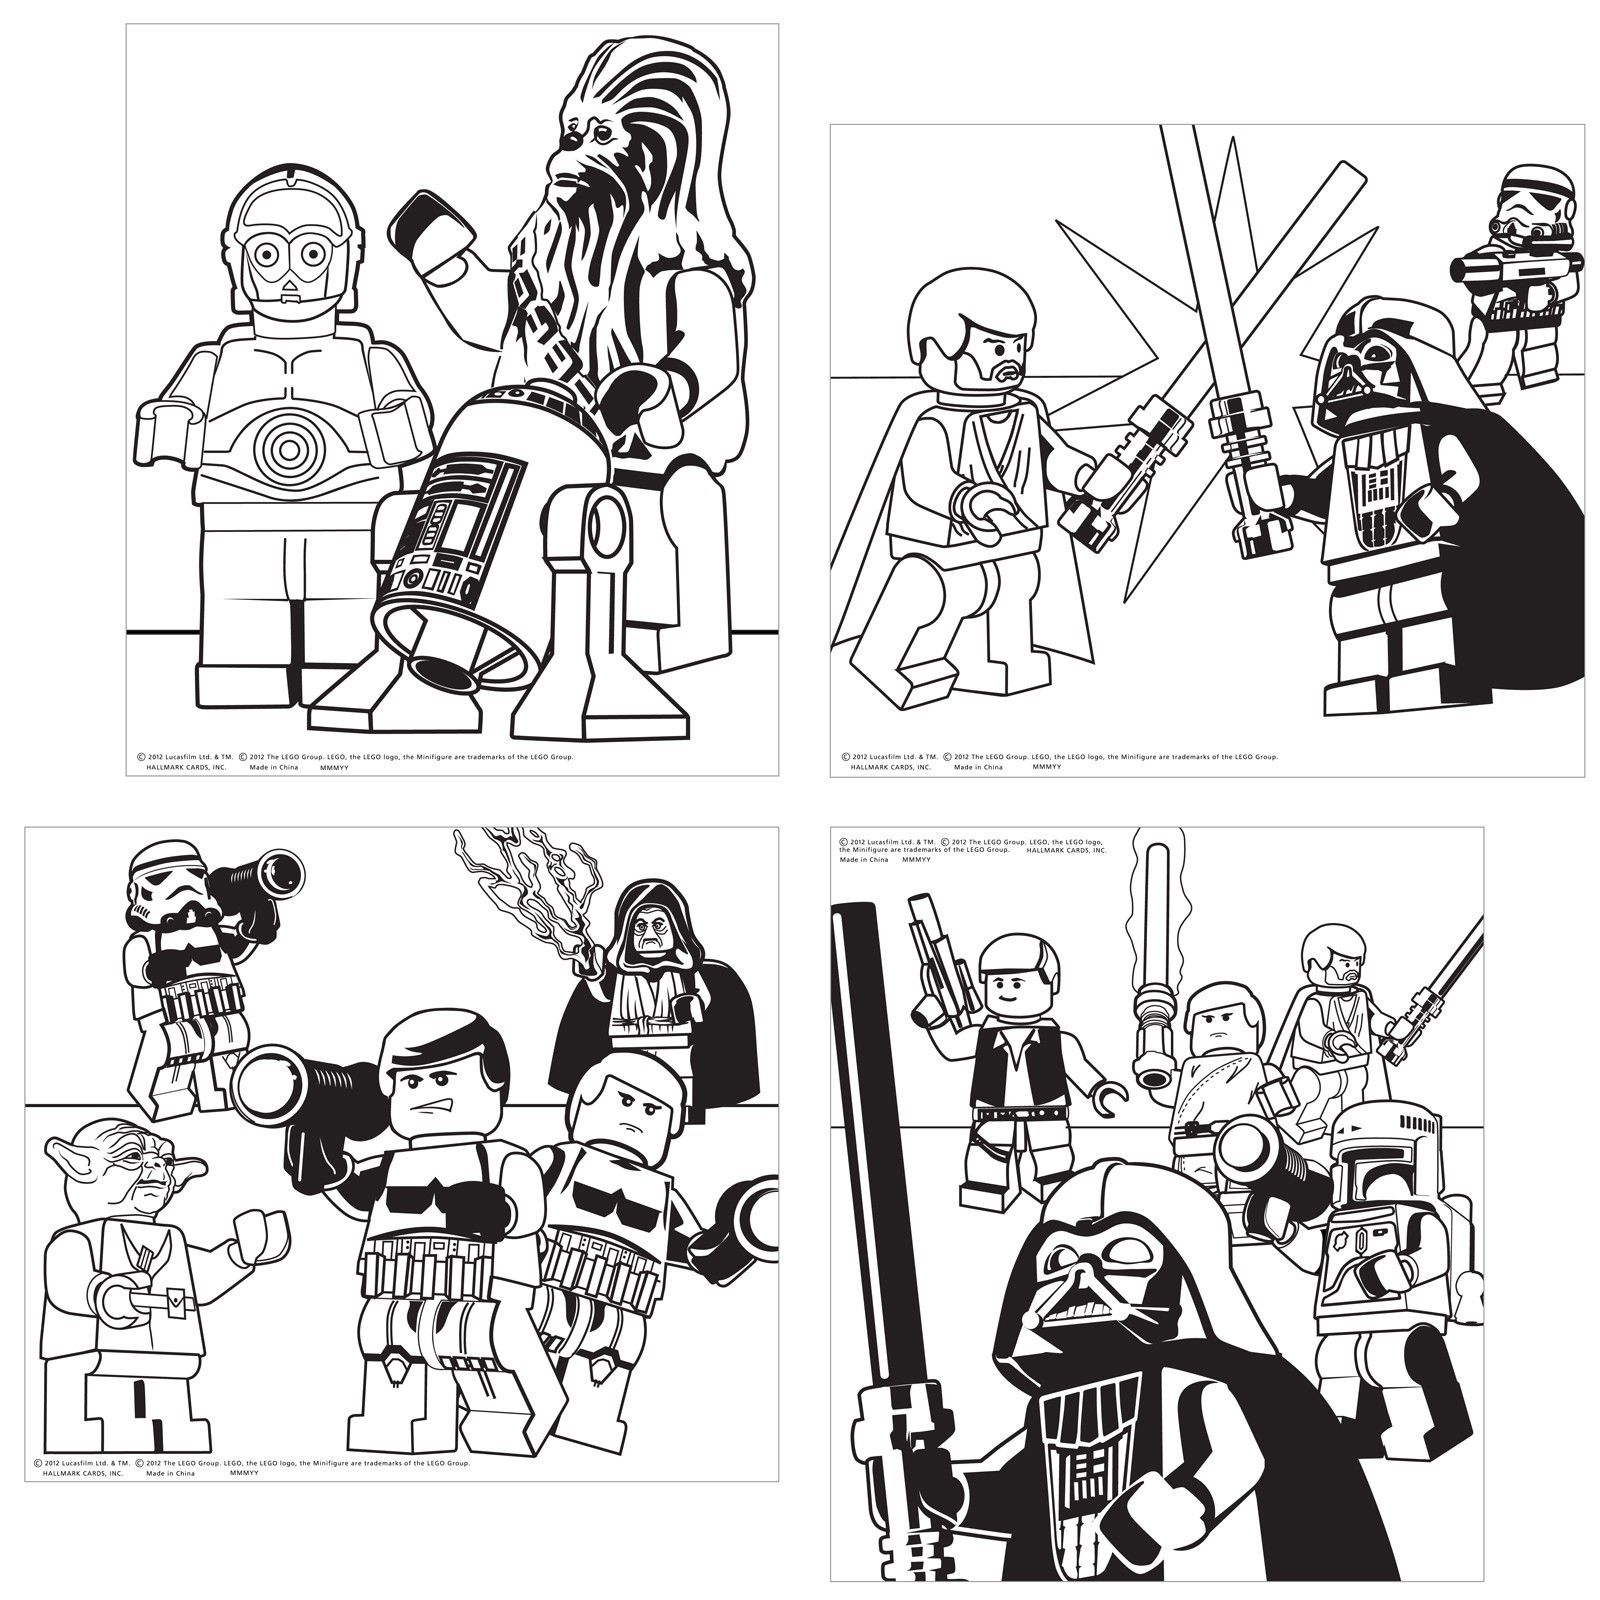 Lego Star Wars Colouring Pages Coloring Pages Lego Ninjago Lego Star Wars Coloring Pages Online General Star Wars Coloring Book Star Wars Colors Lego Poster